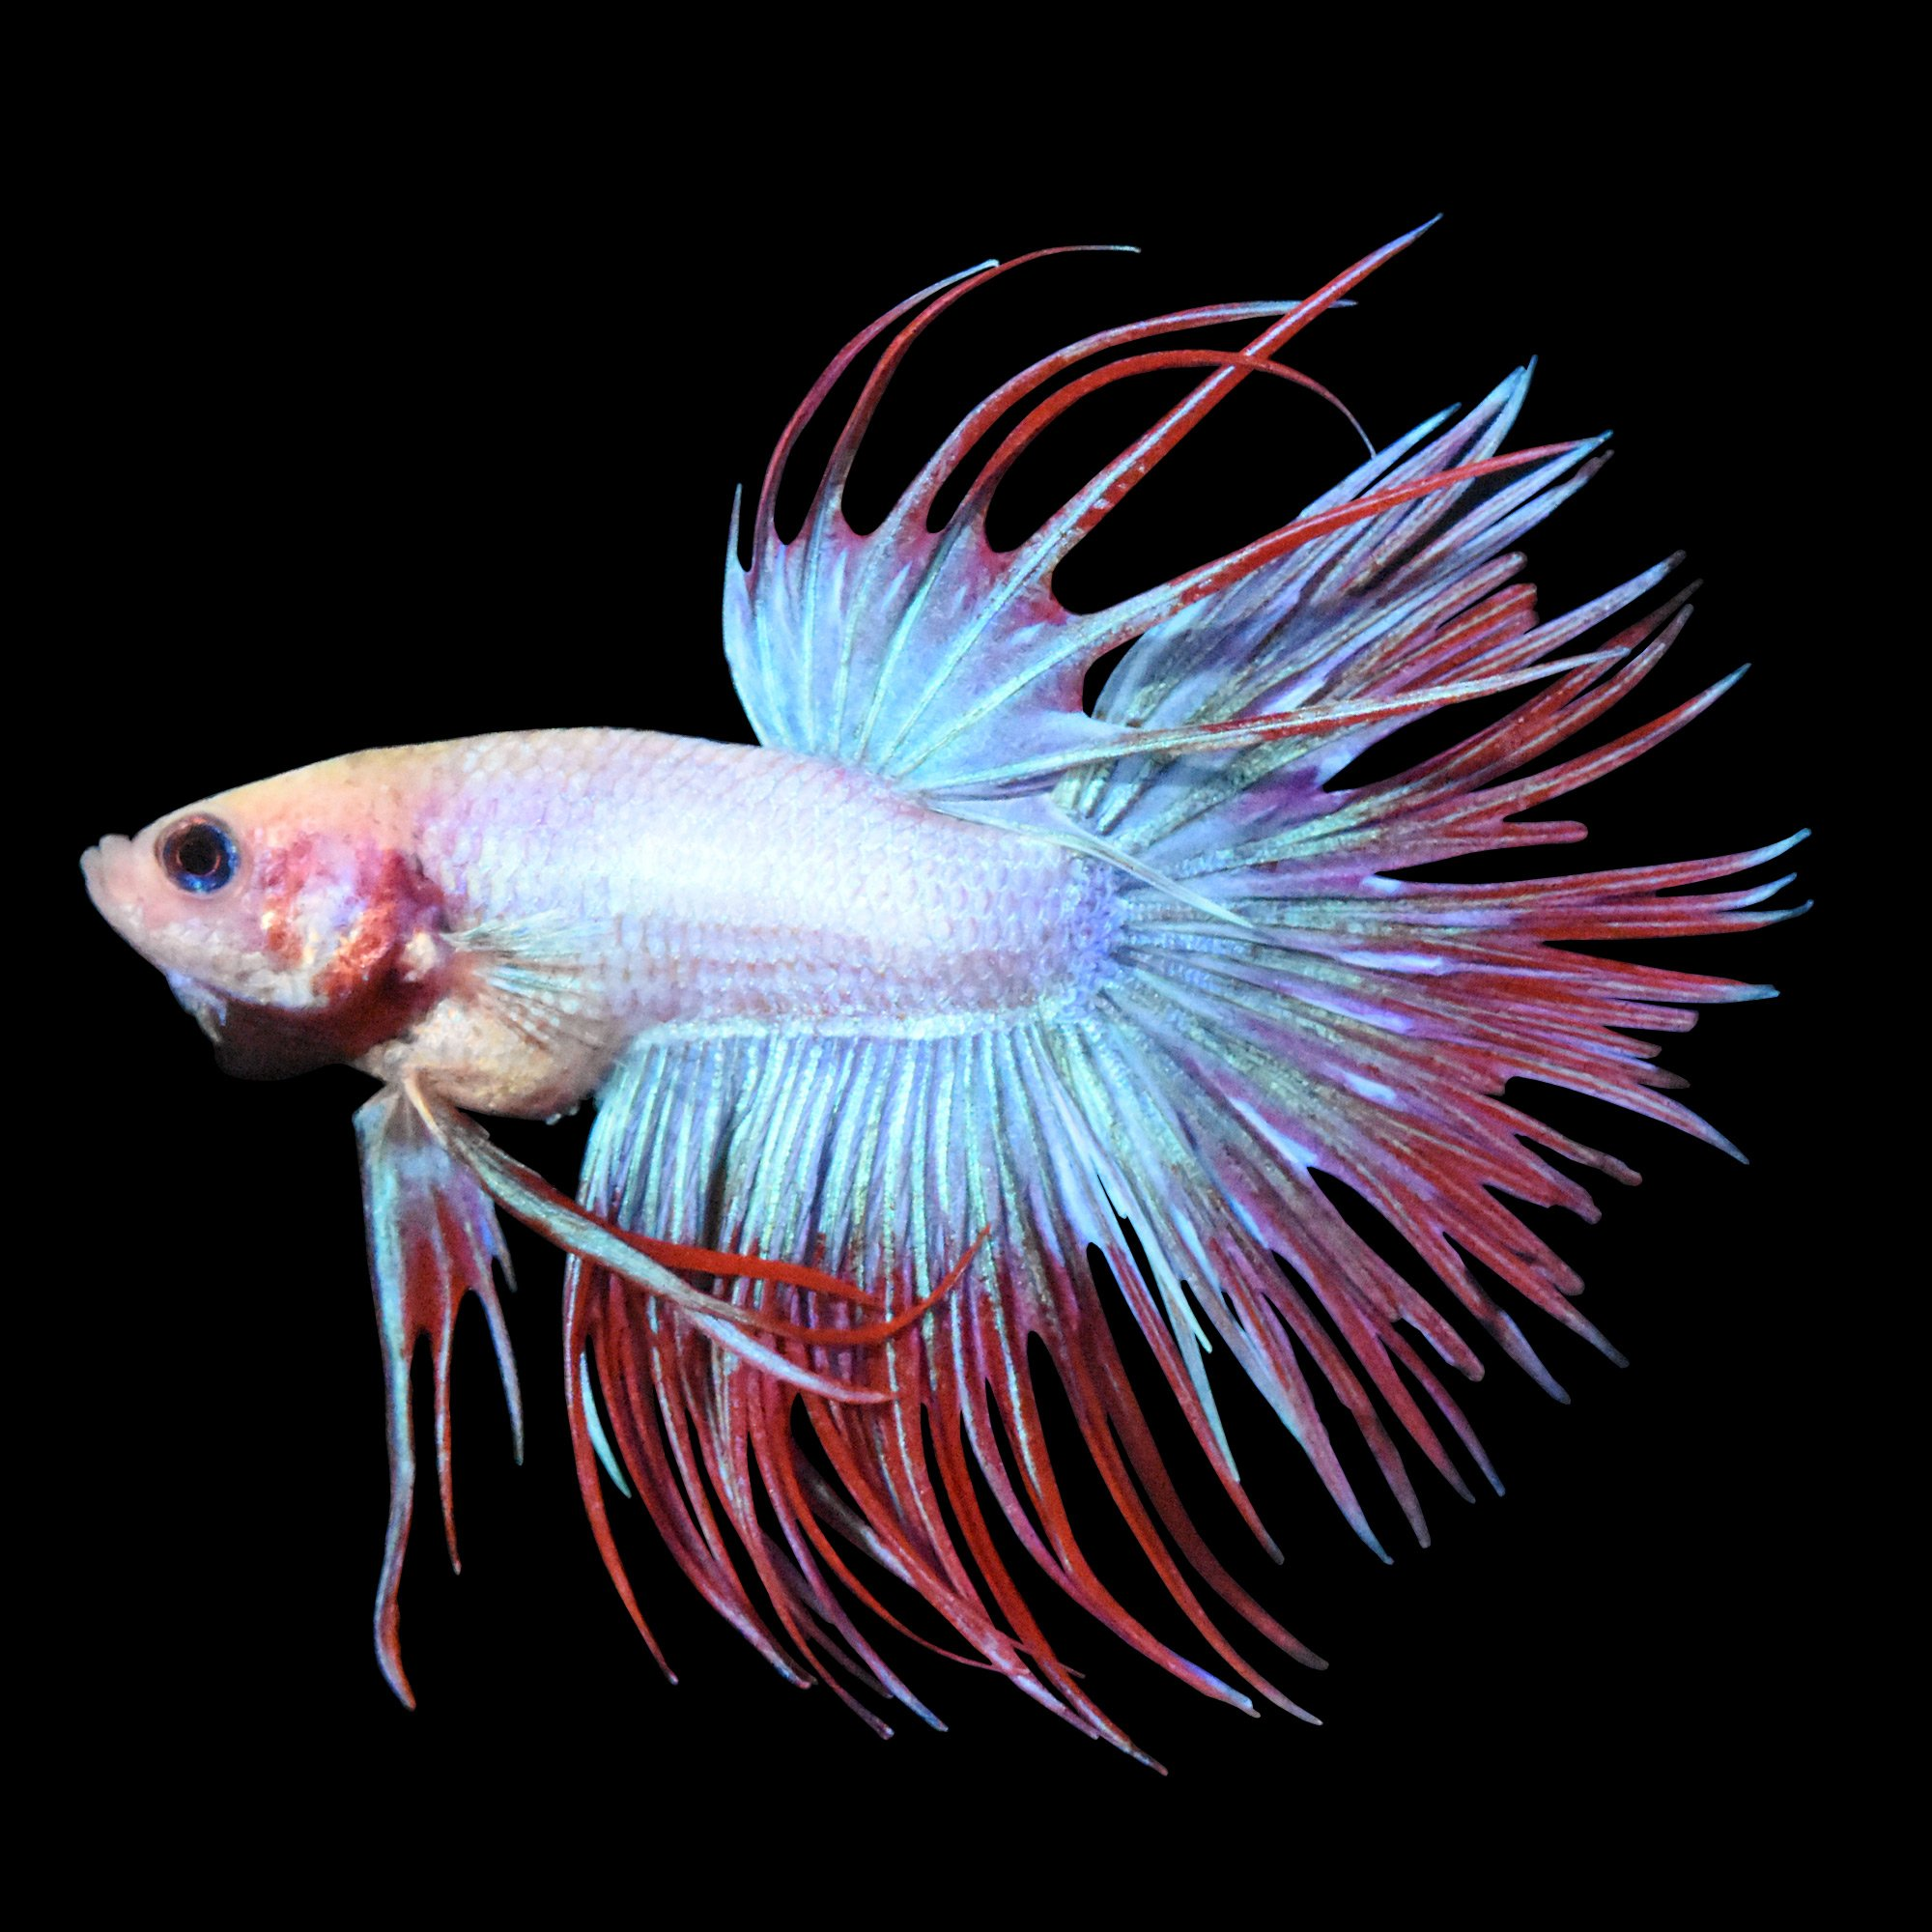 Male Cambodian Crowntail Betta Petco